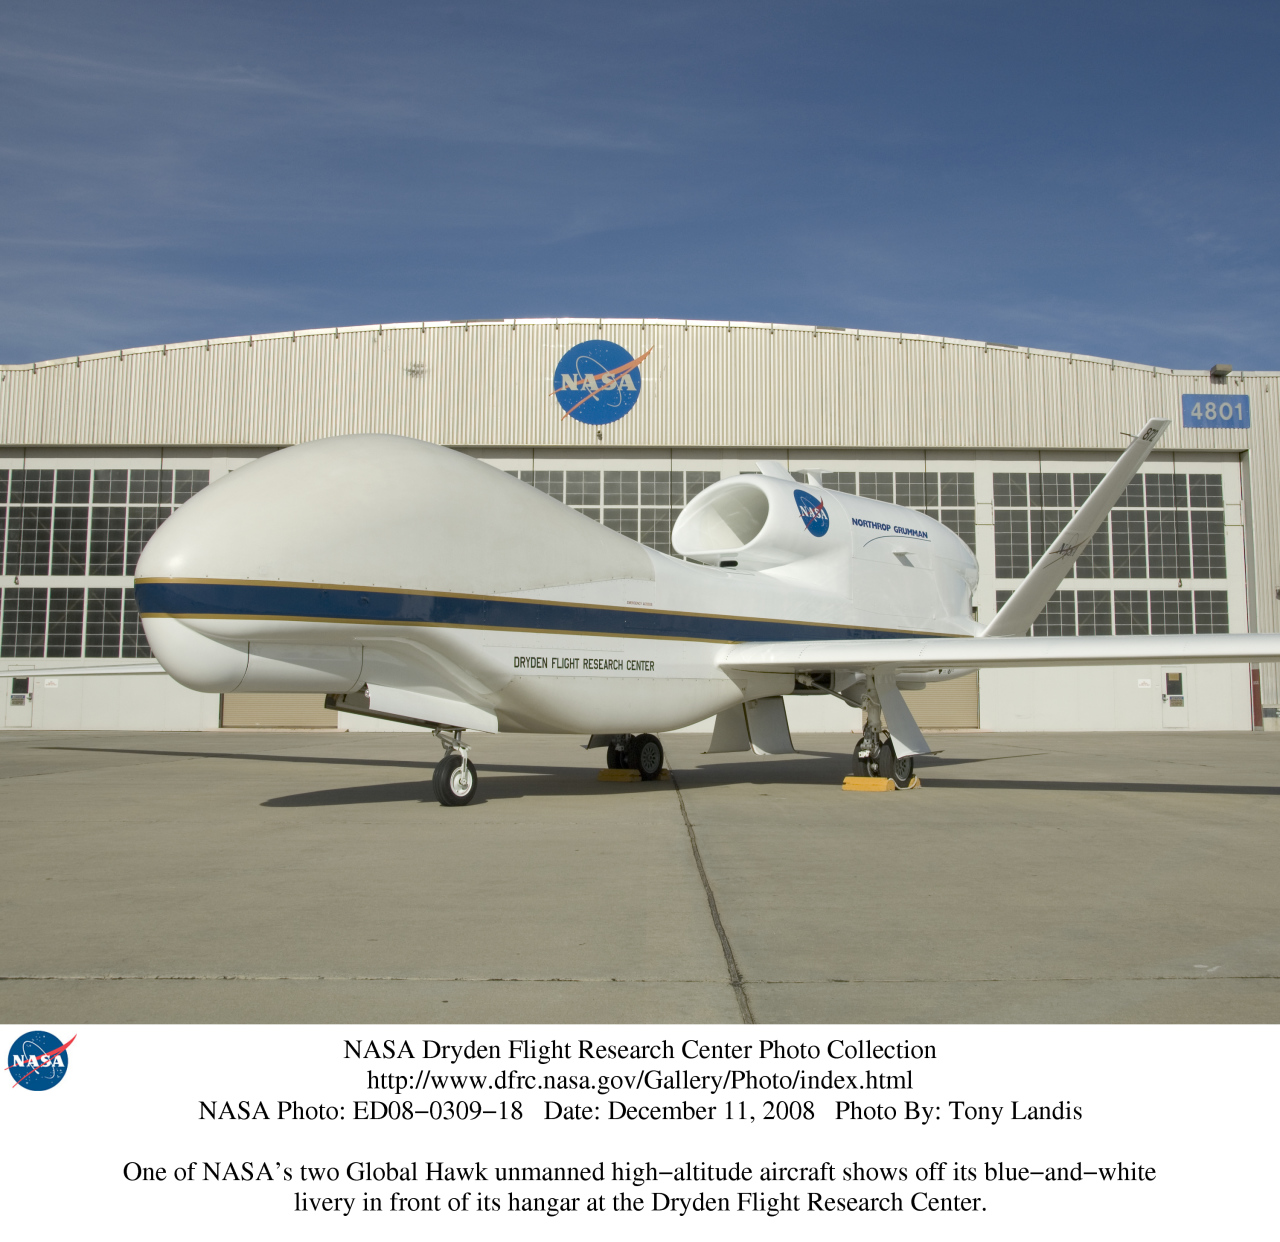 a nasa aircraft in hangar - photo #41